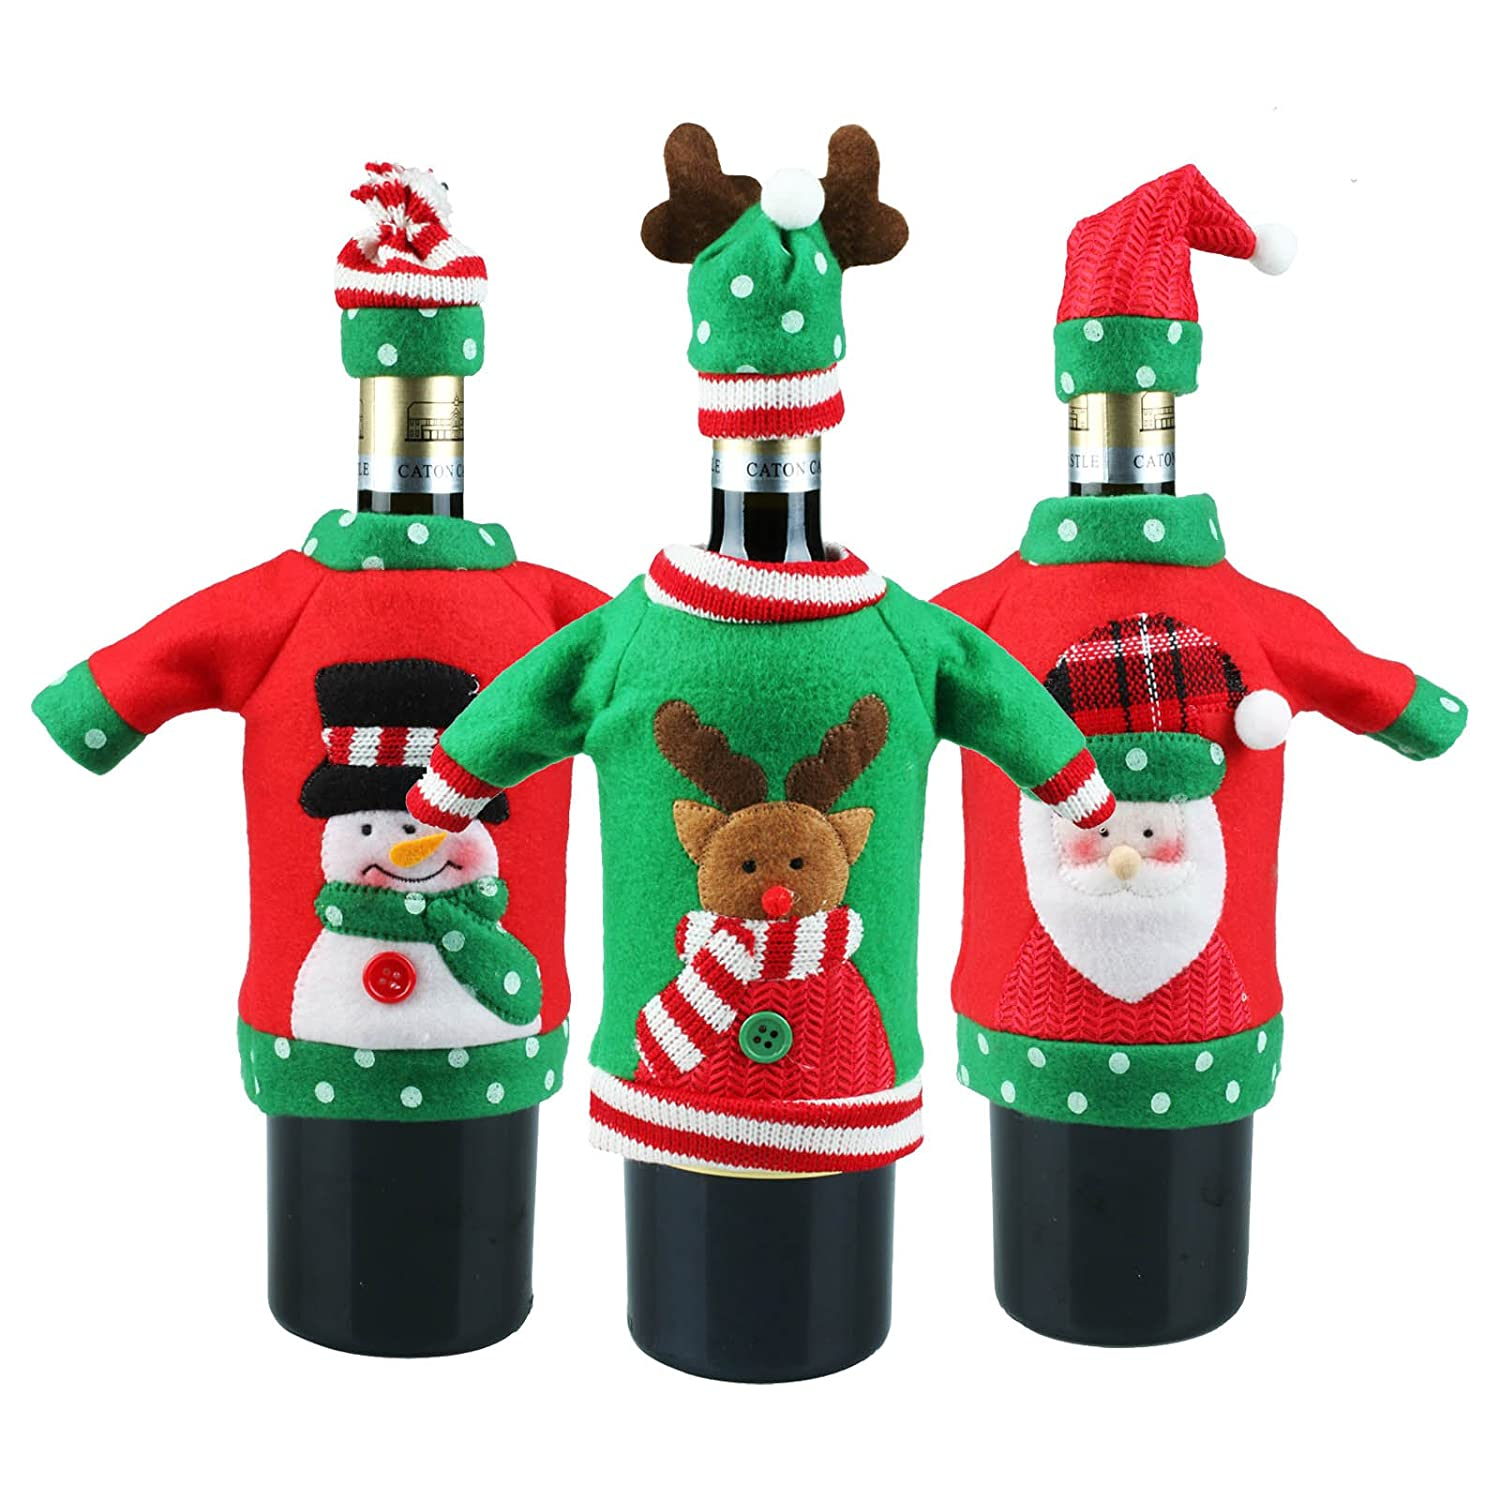 vLoveLife 3pcs Christmas Sweater Wine Bottle Cover, Handmade Ugly Wine Bottle Sweater Santa Red Wine Bottle Dress Sets for Christmas Gifts Xmas Party Kit Decorations